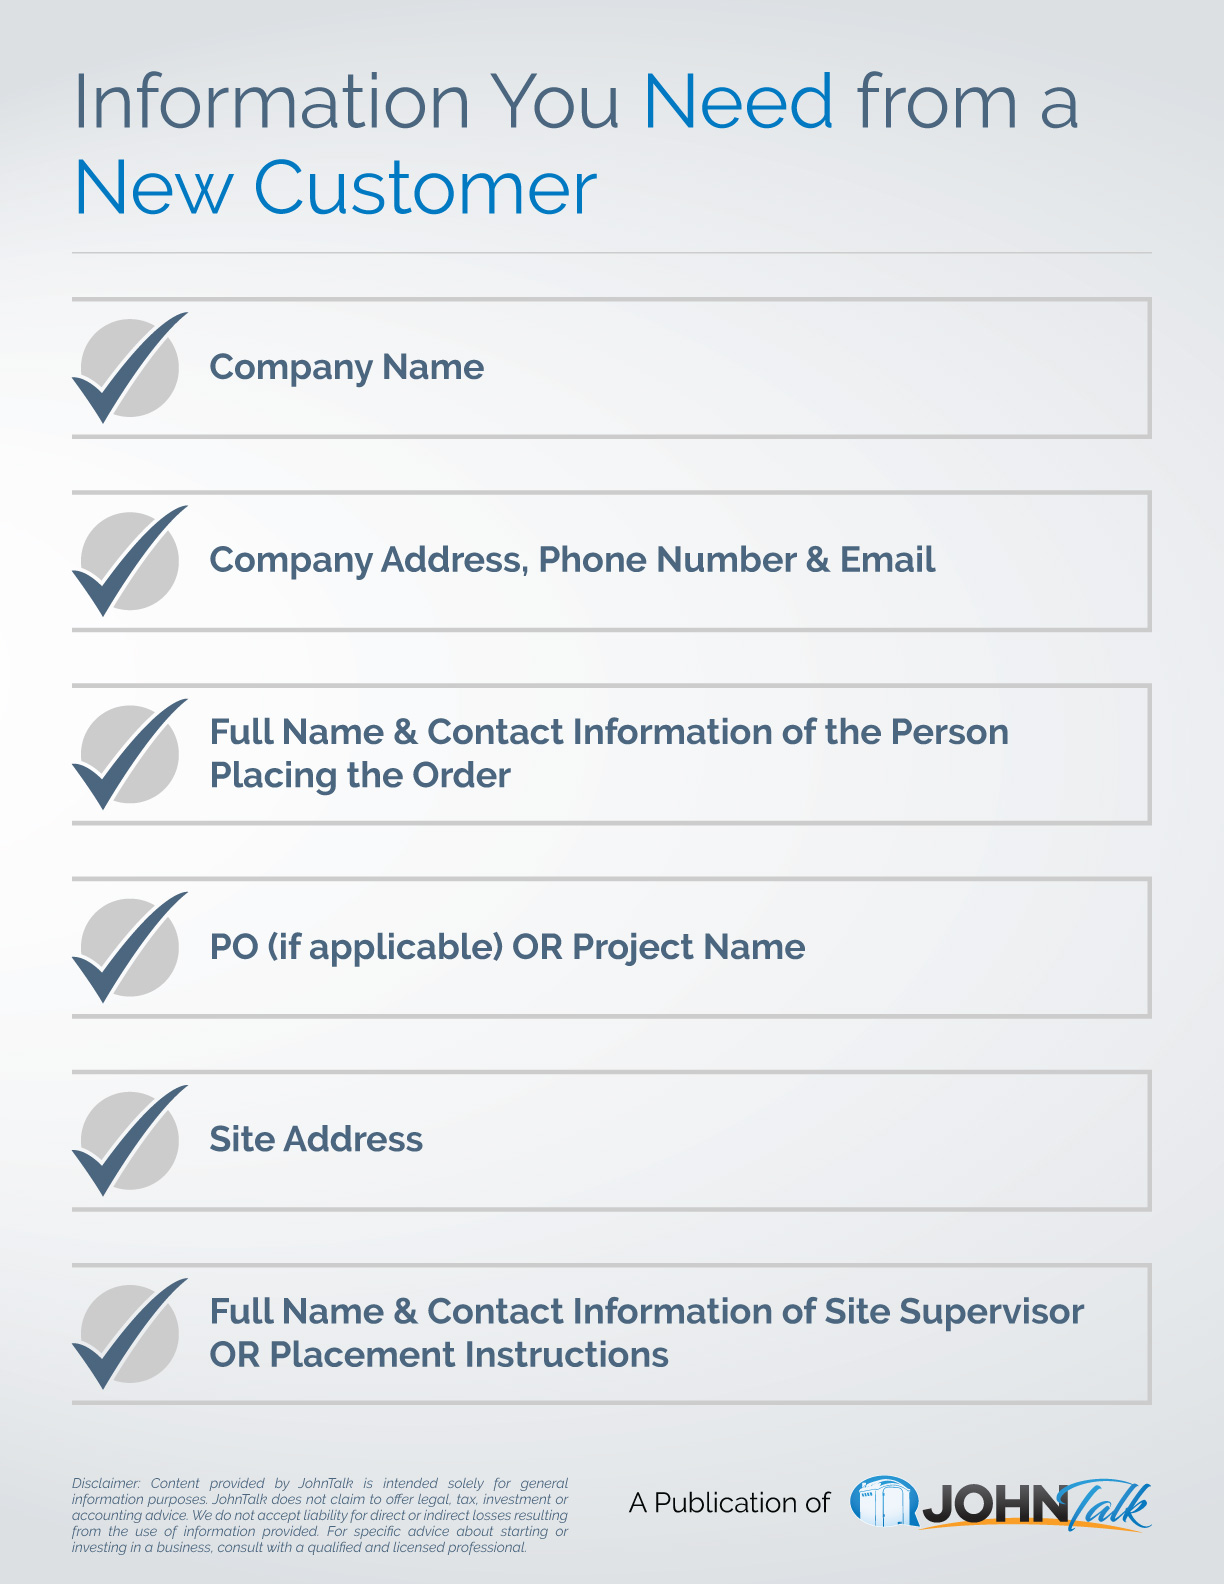 Information You Need from a New Customer